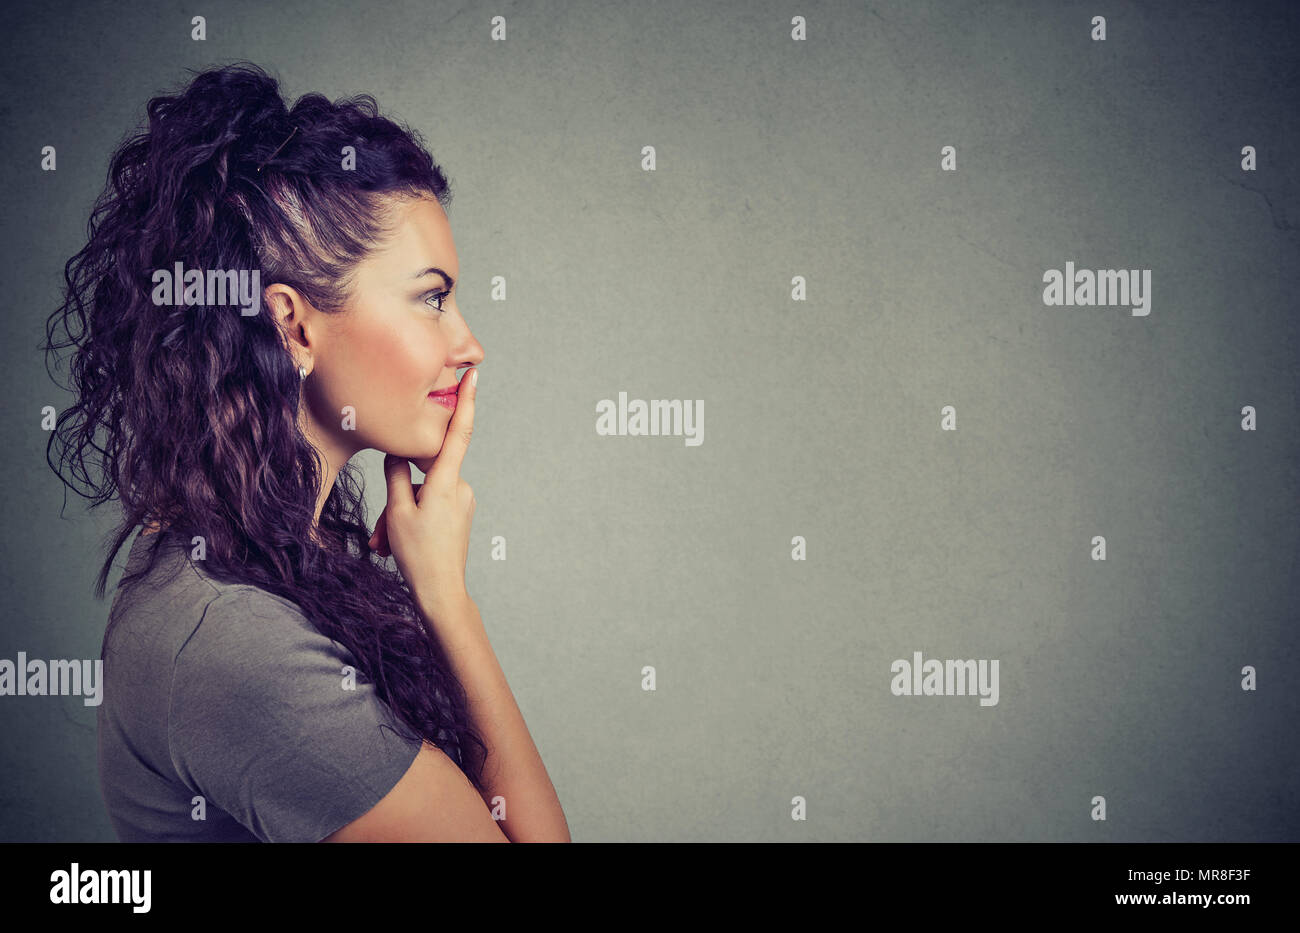 Side view of pretty brunette touching lips in contemplation and looking away thinking of idea on gray background. - Stock Image